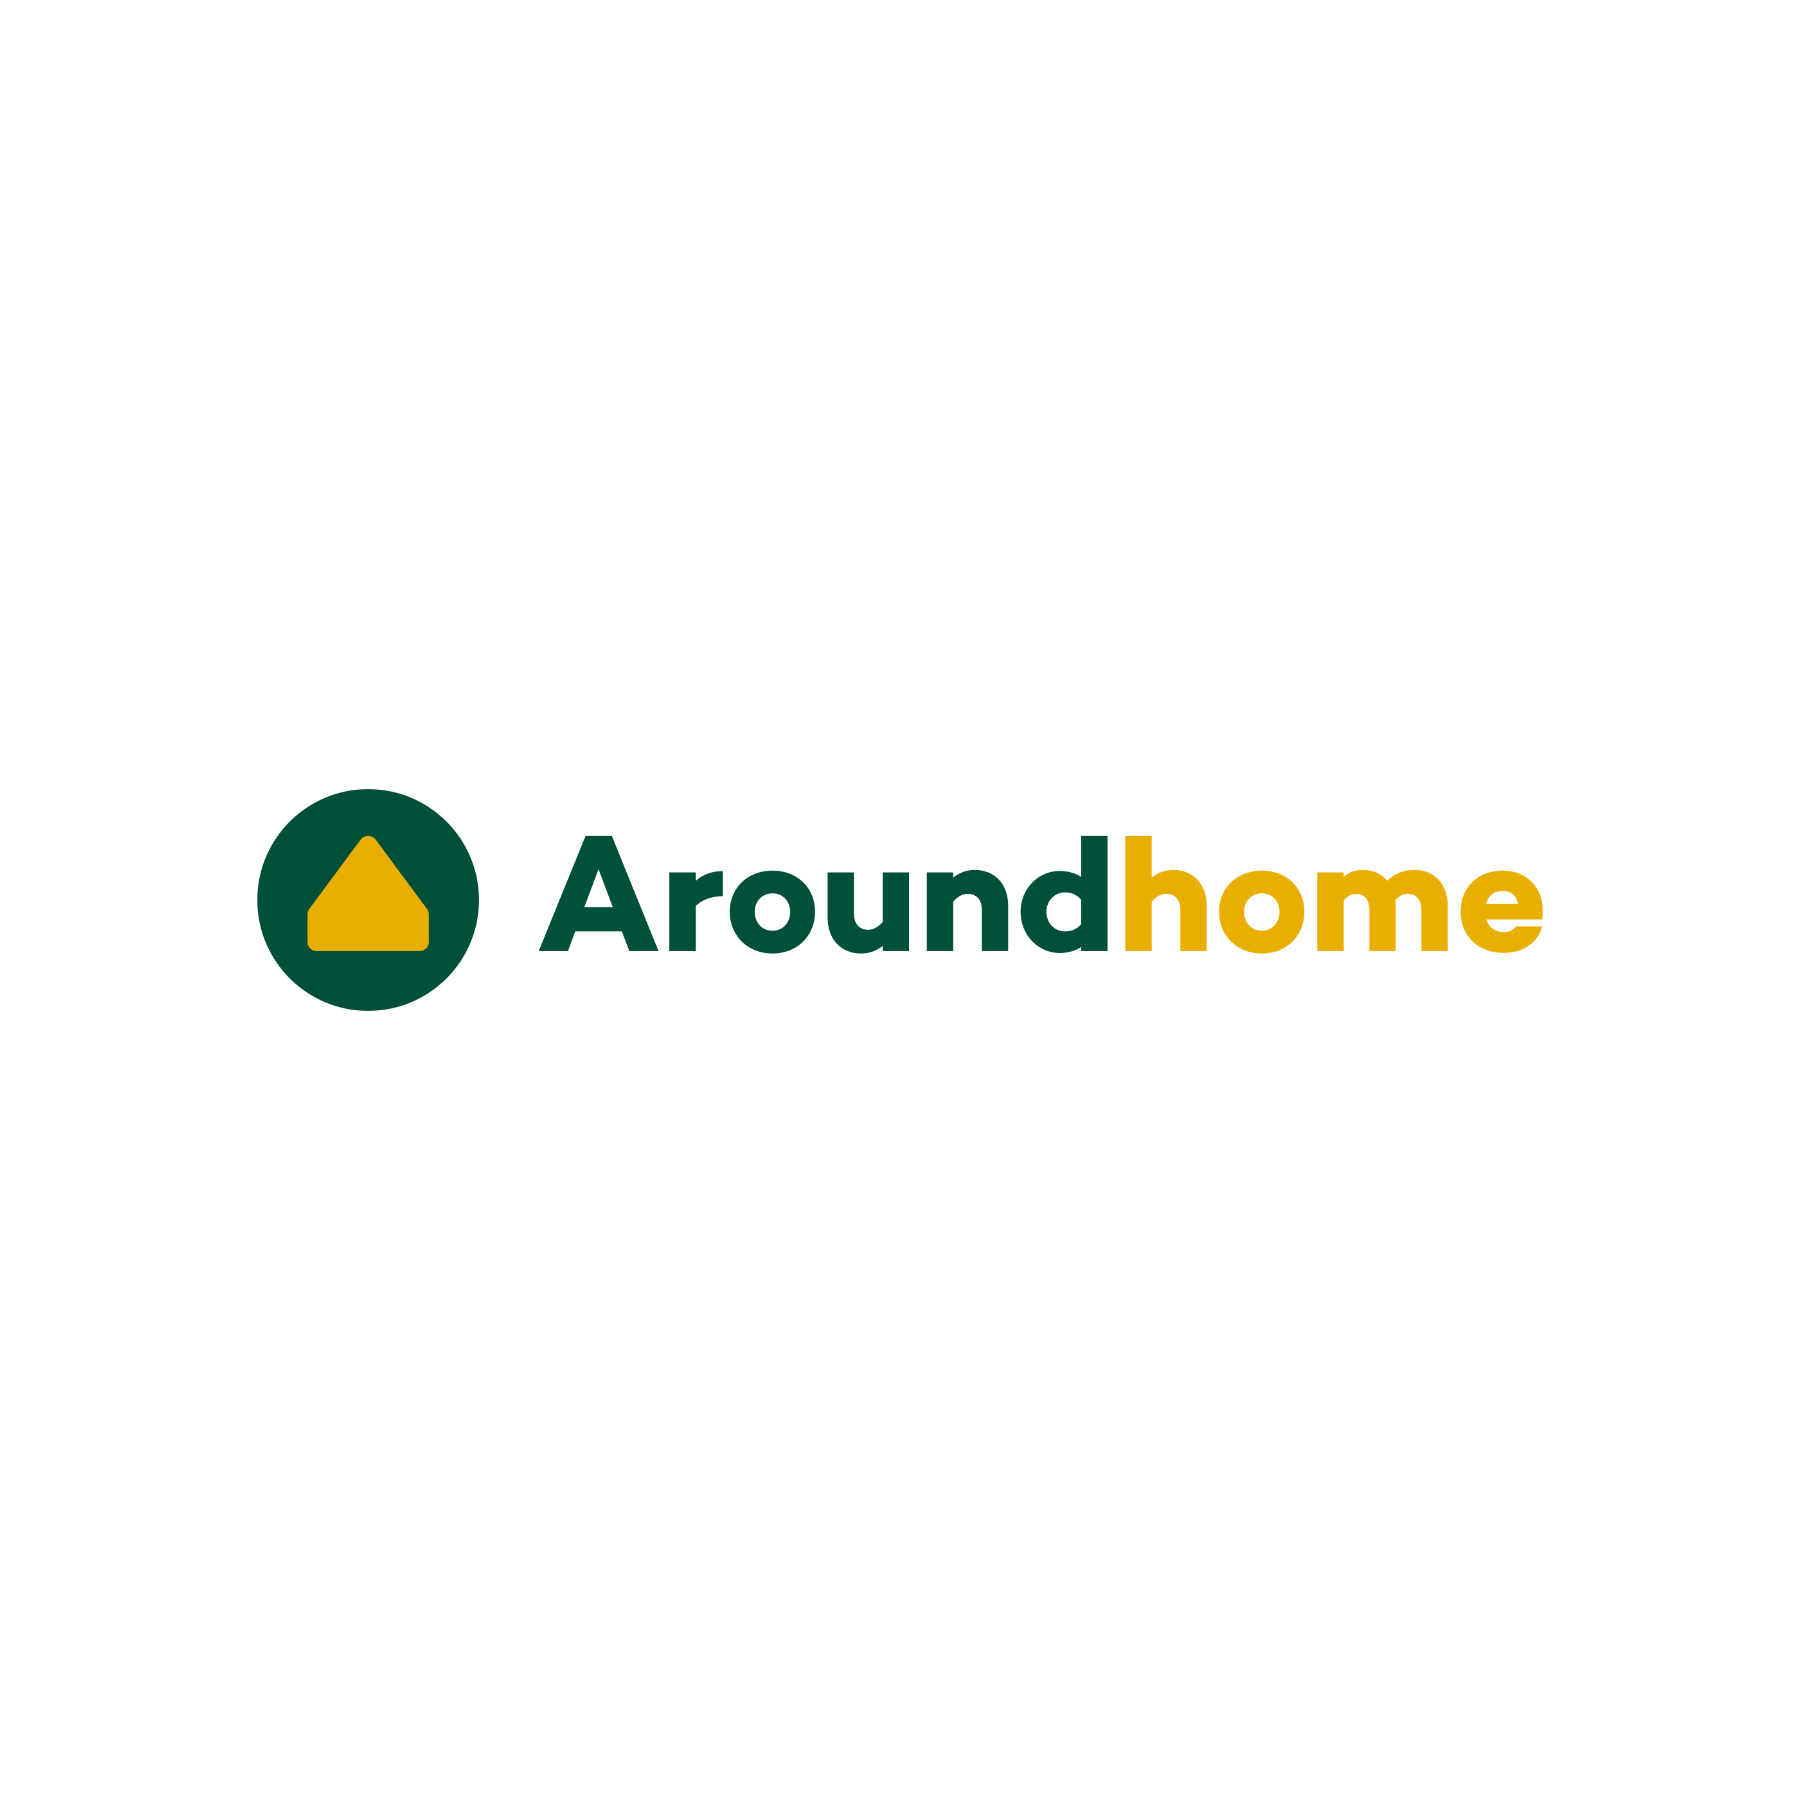 Aroundhome.png